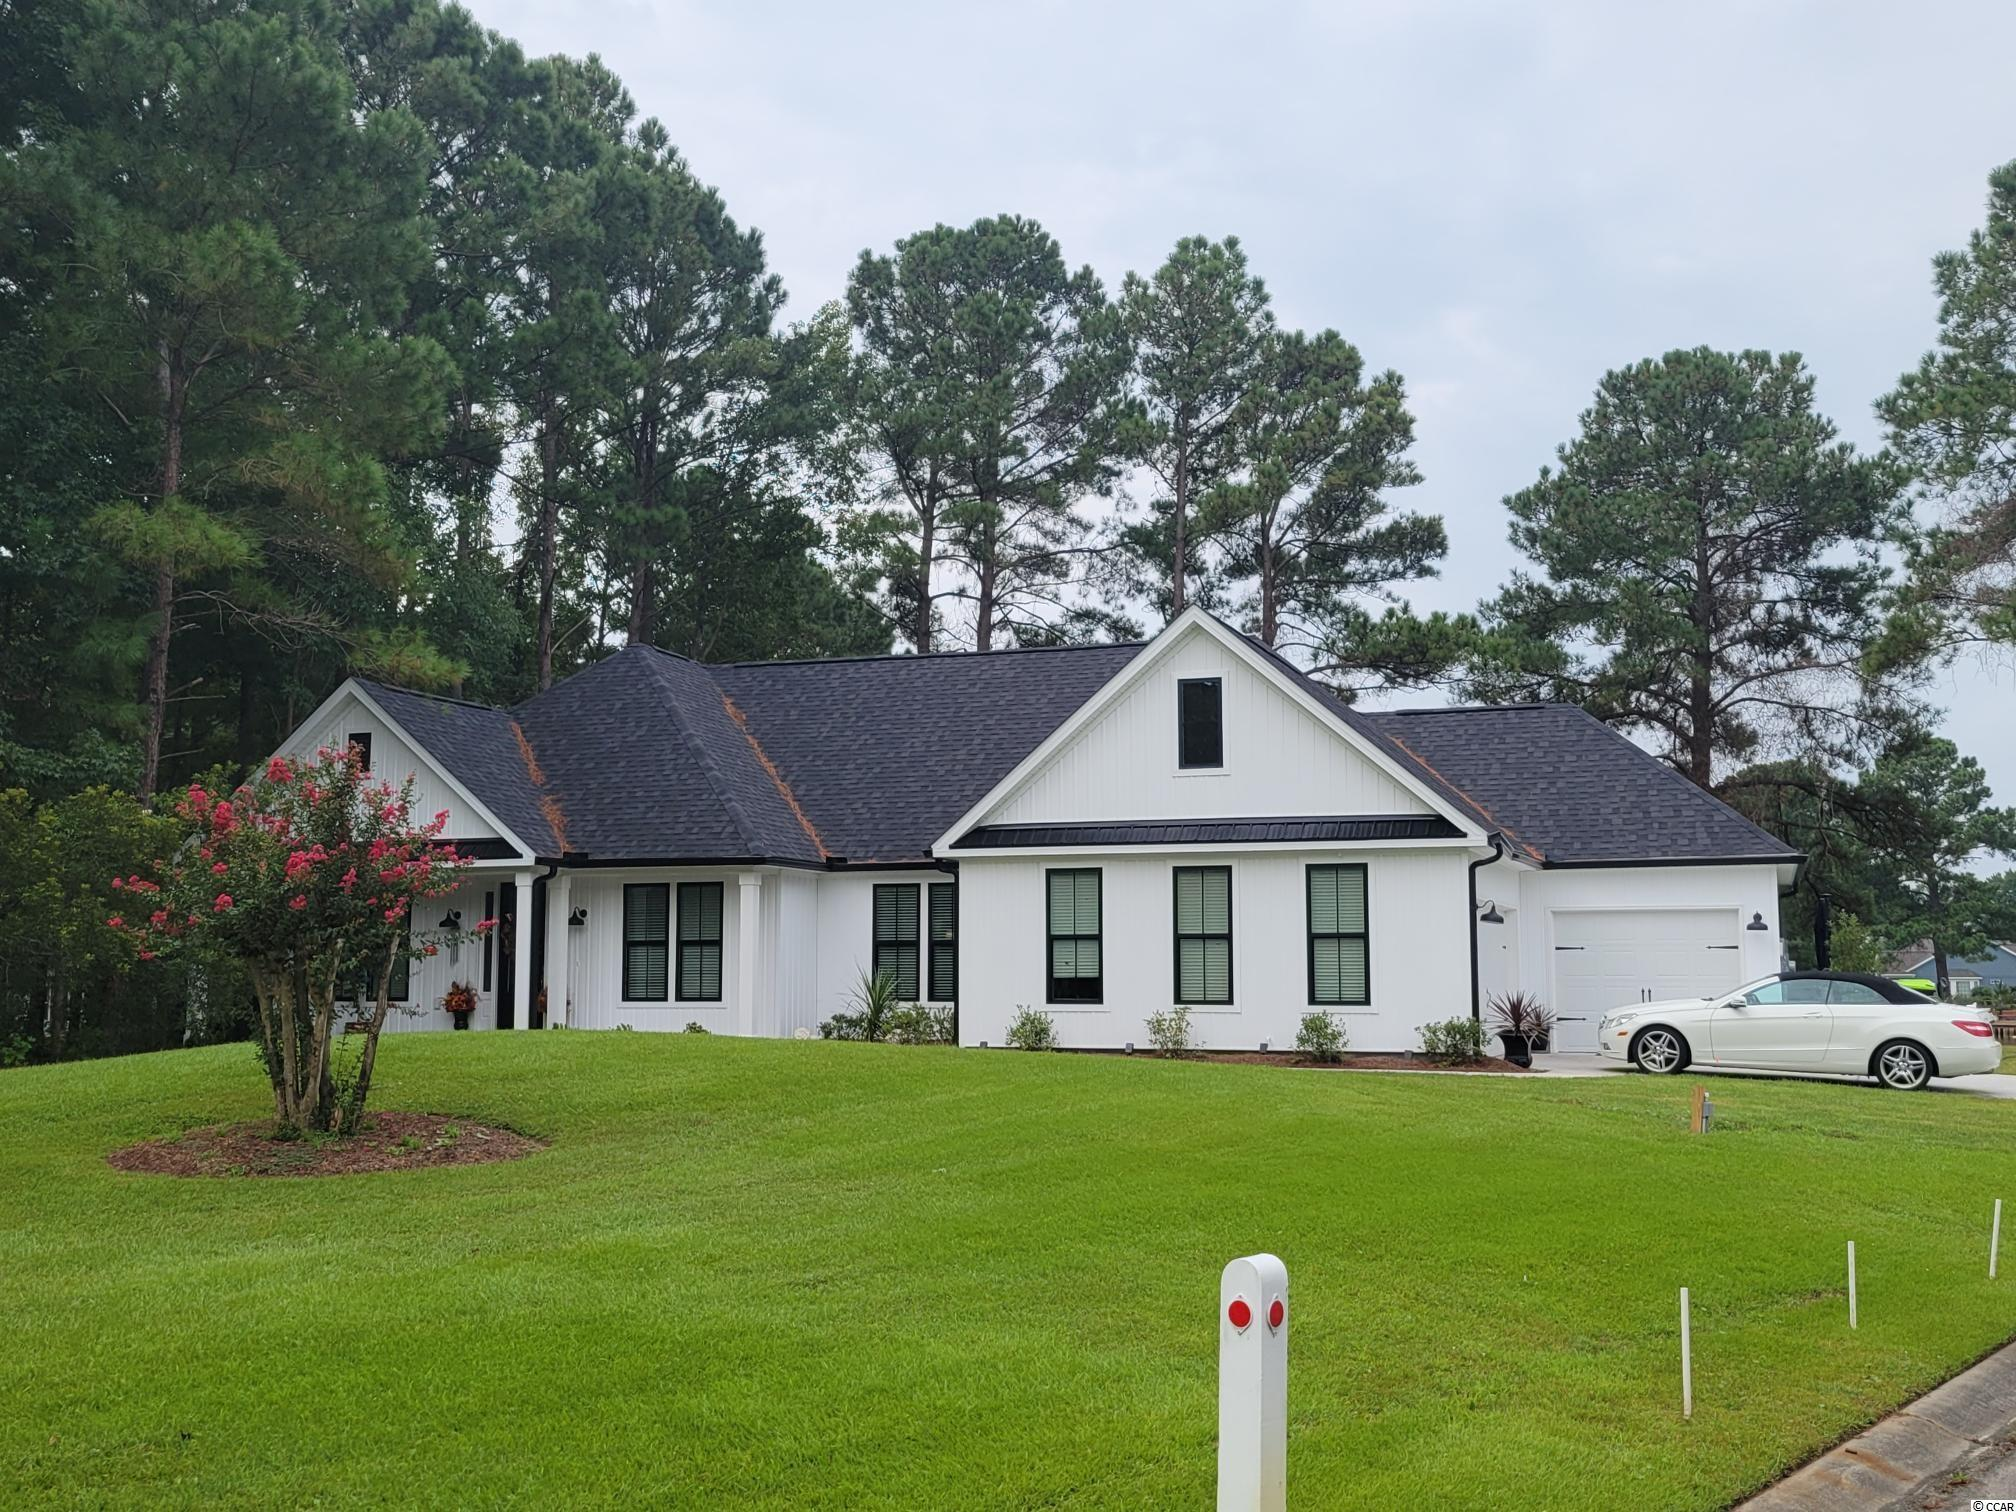 Experience the joy of living mere minutes away from the beach on a lot exempt from having an HOA! This open concept 3 bedroom 2 bath features an office, large kitchen island and split floorplan situated on a .29 acre lot. The virtual tour of this home is meant to give an idea of the space and layout for a Augusta floor plan.